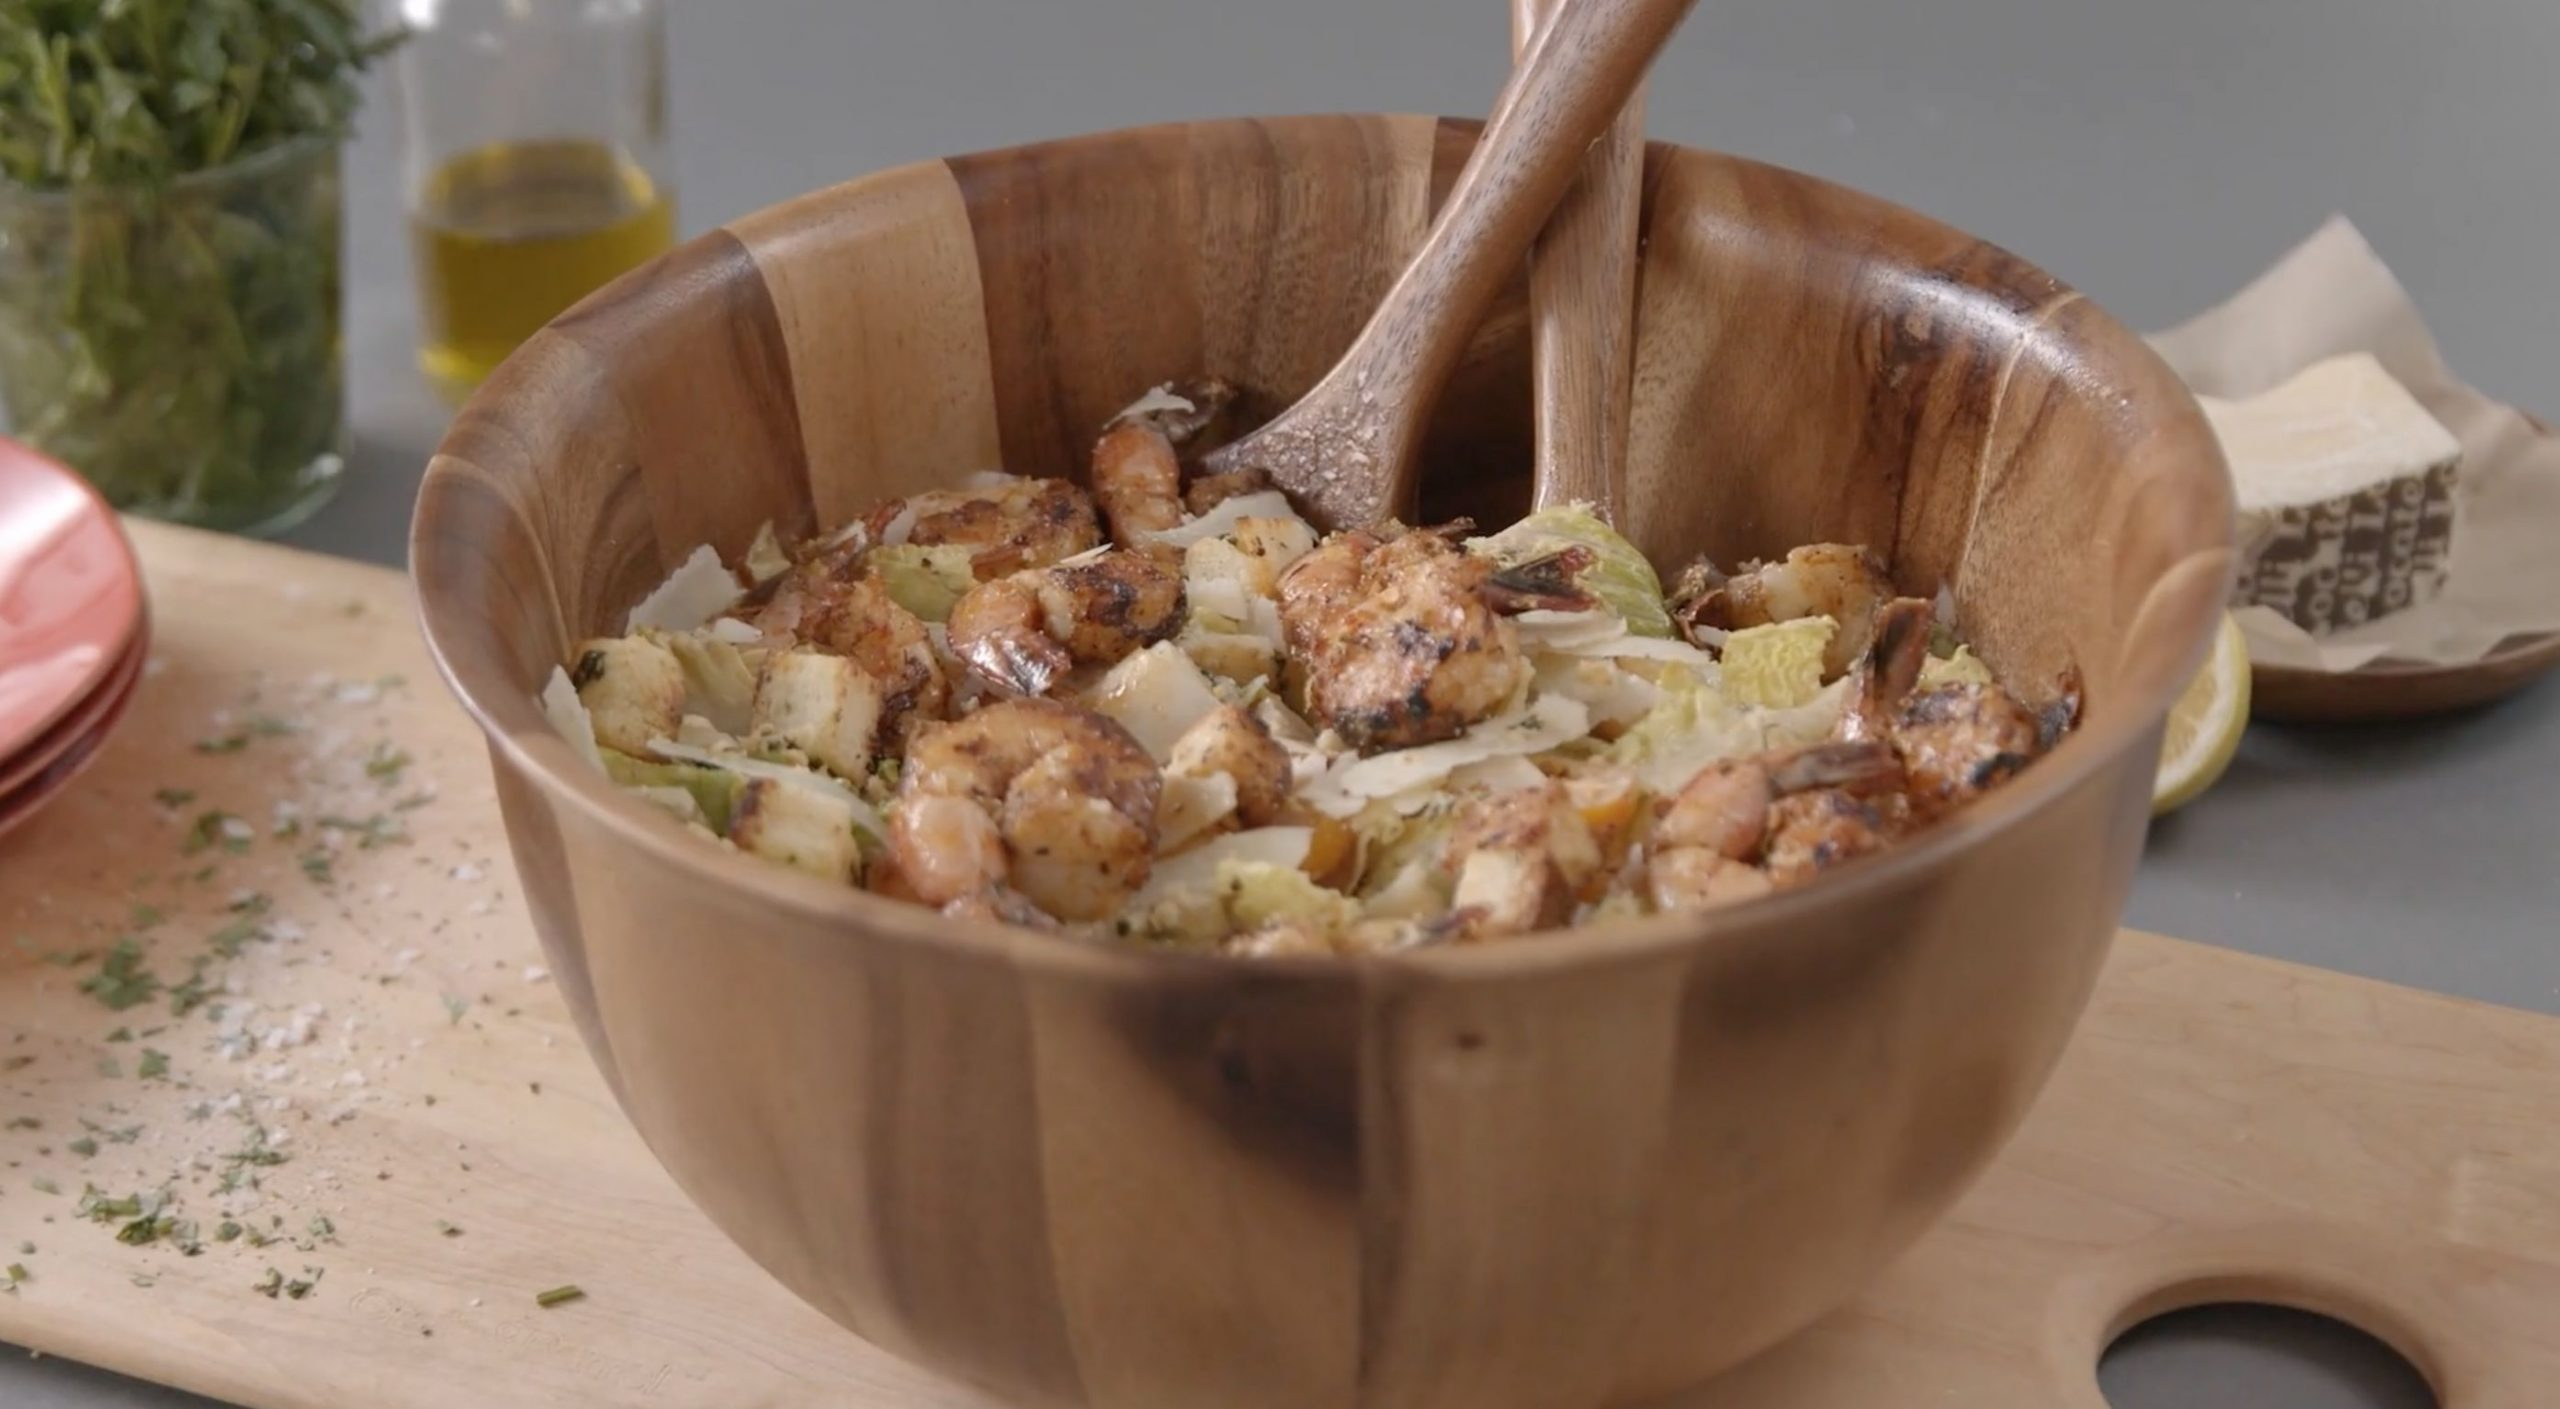 This Southern style Caesar salad features juicy grilled shrimp seasoned with Old Bay